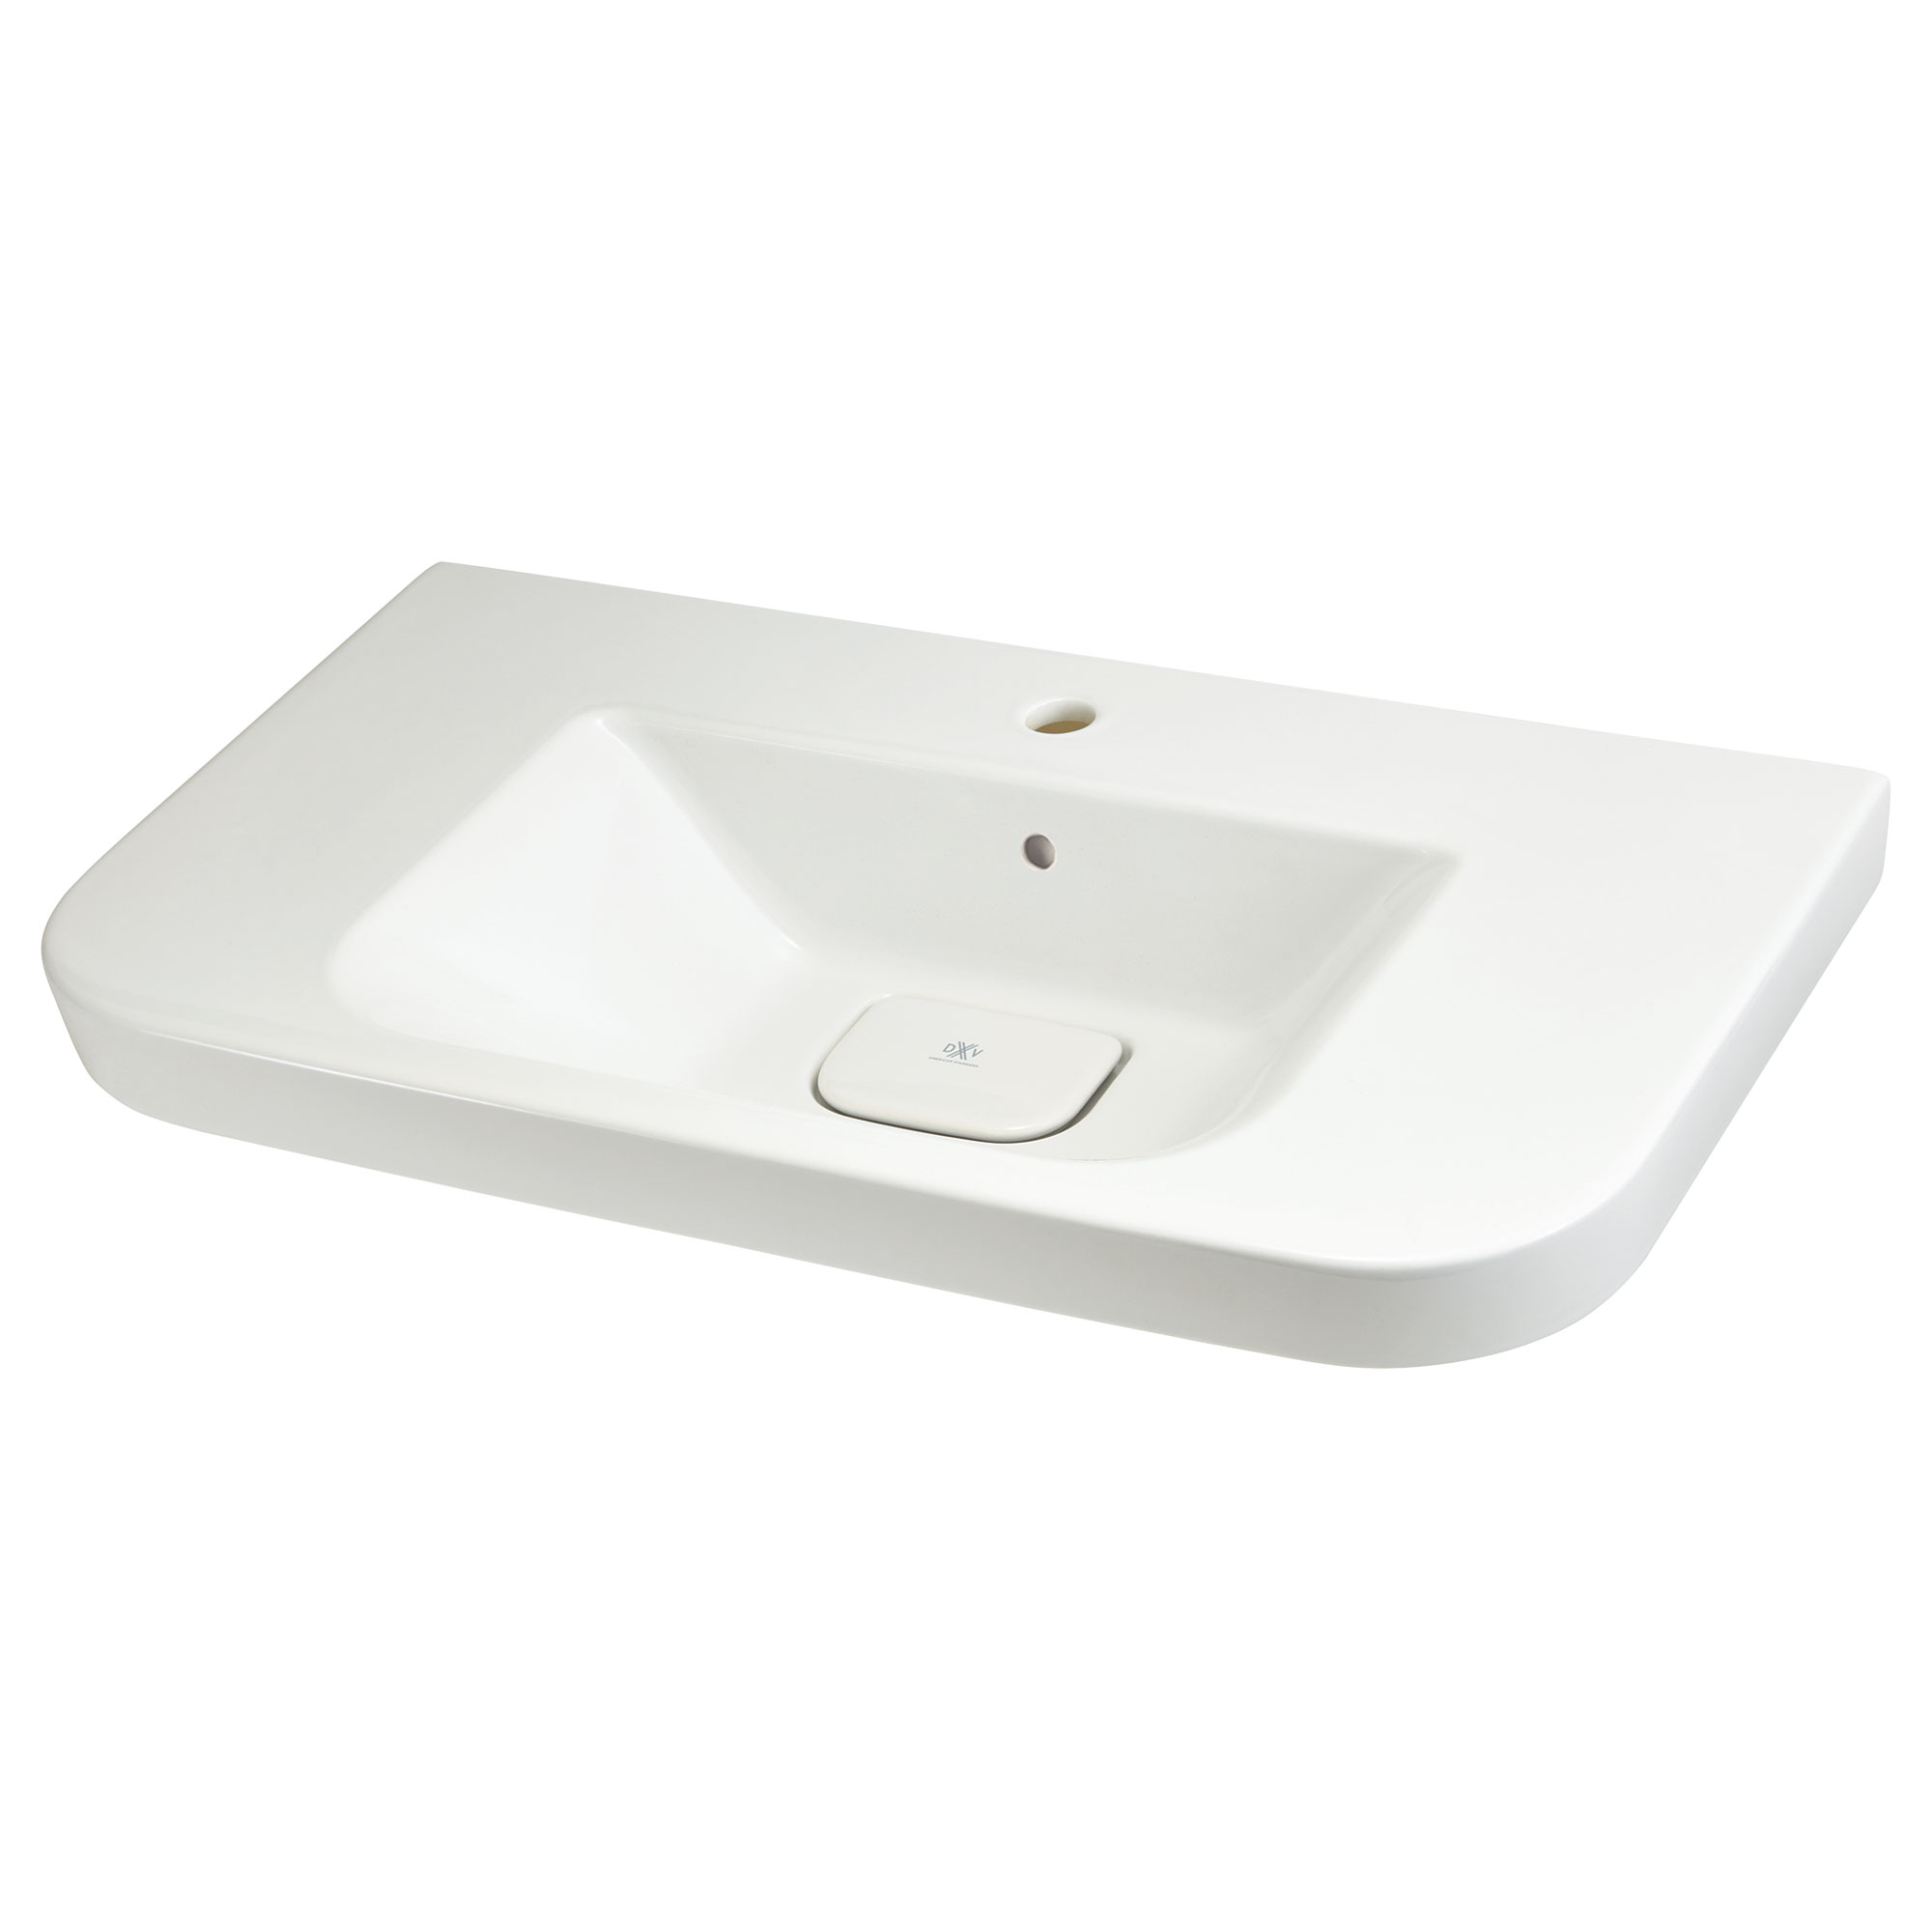 Lyndon 33-inch Single Hole Wall-Hung Bathroom Sink - Projects Model